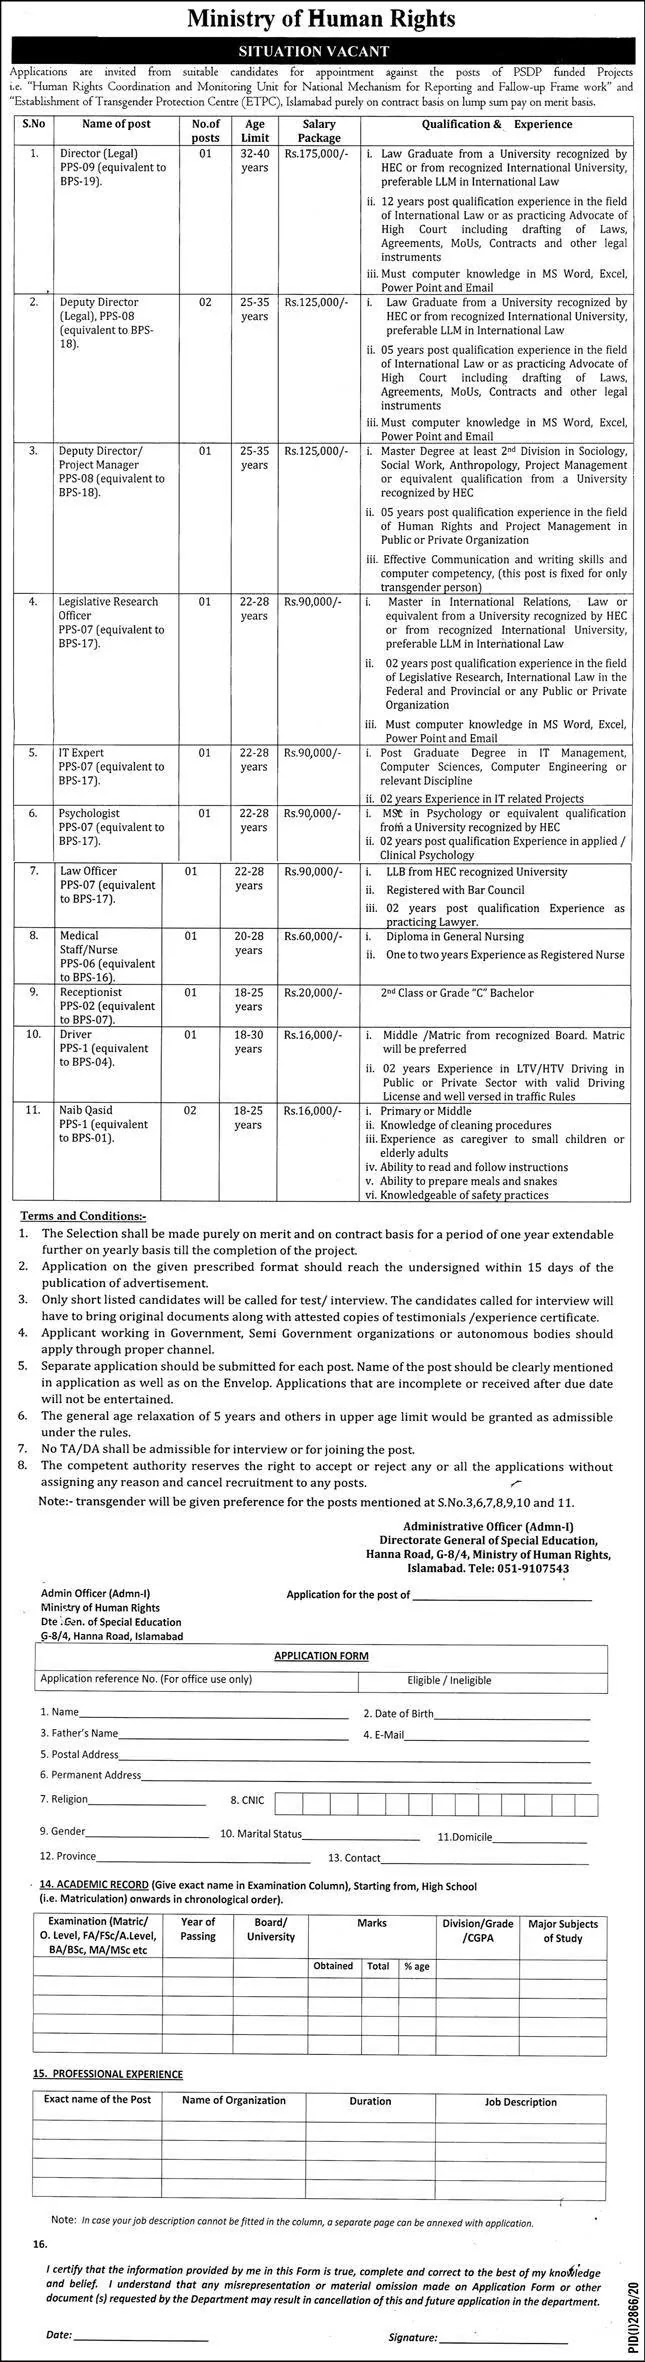 Government of Pakistan Ministry of Human Rights Jobs 2020